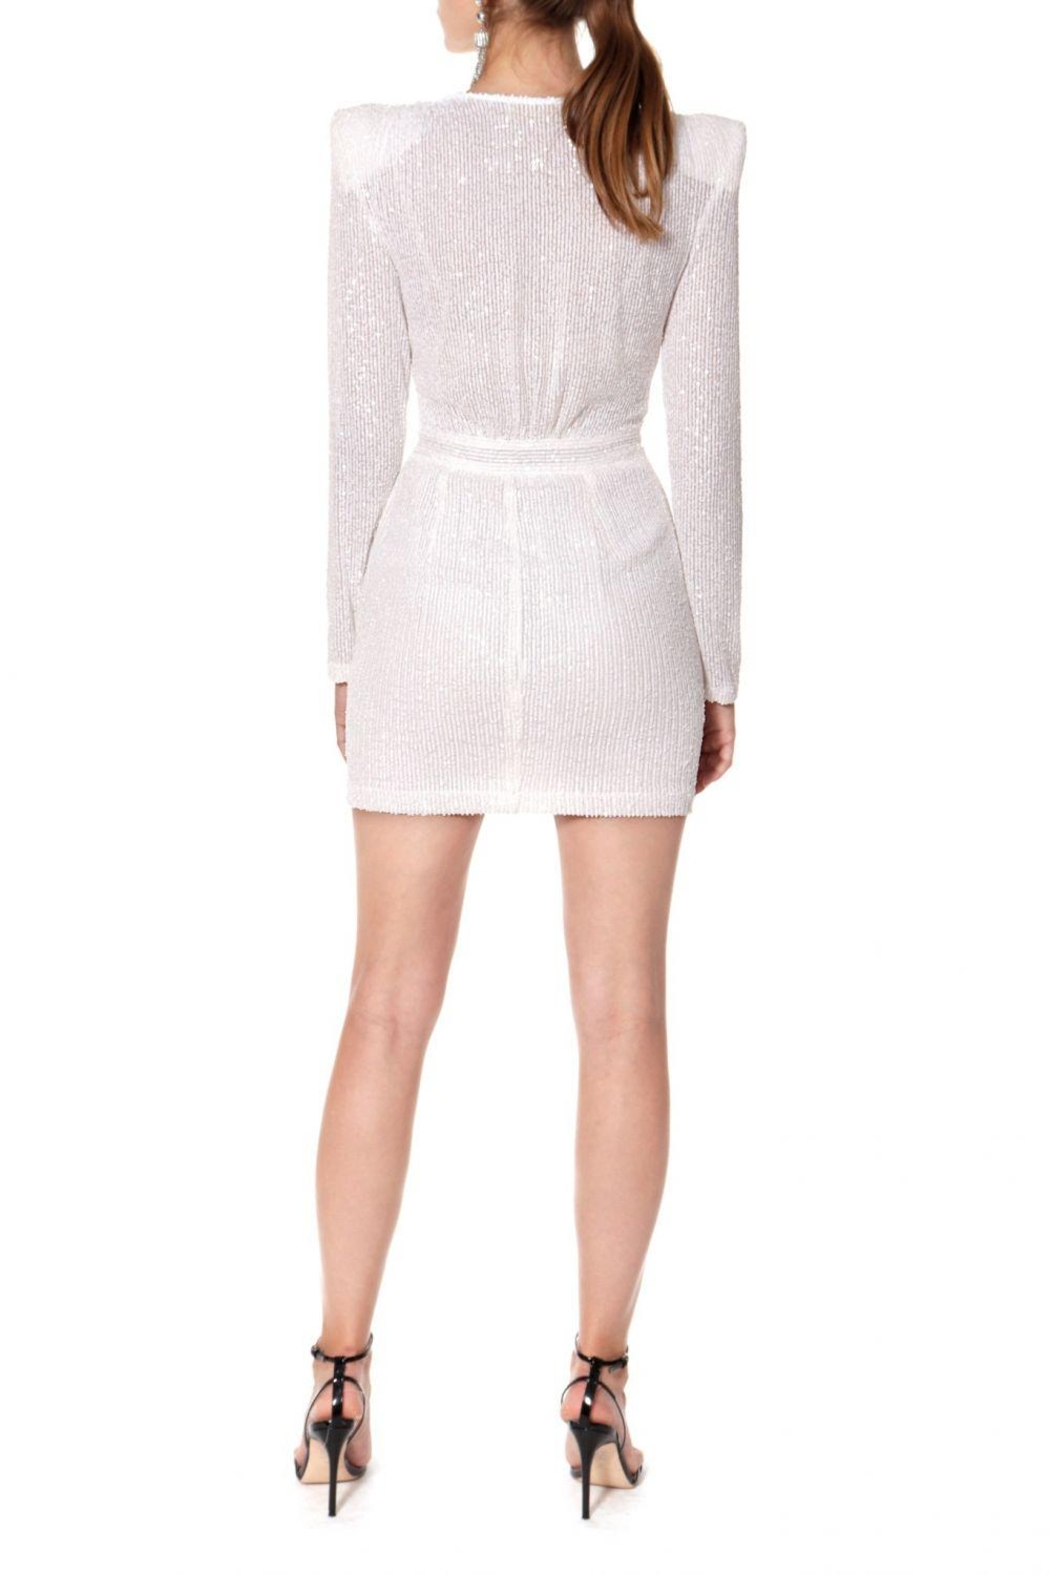 AGGI Dress Jennifer Super White - Back Cropped Image